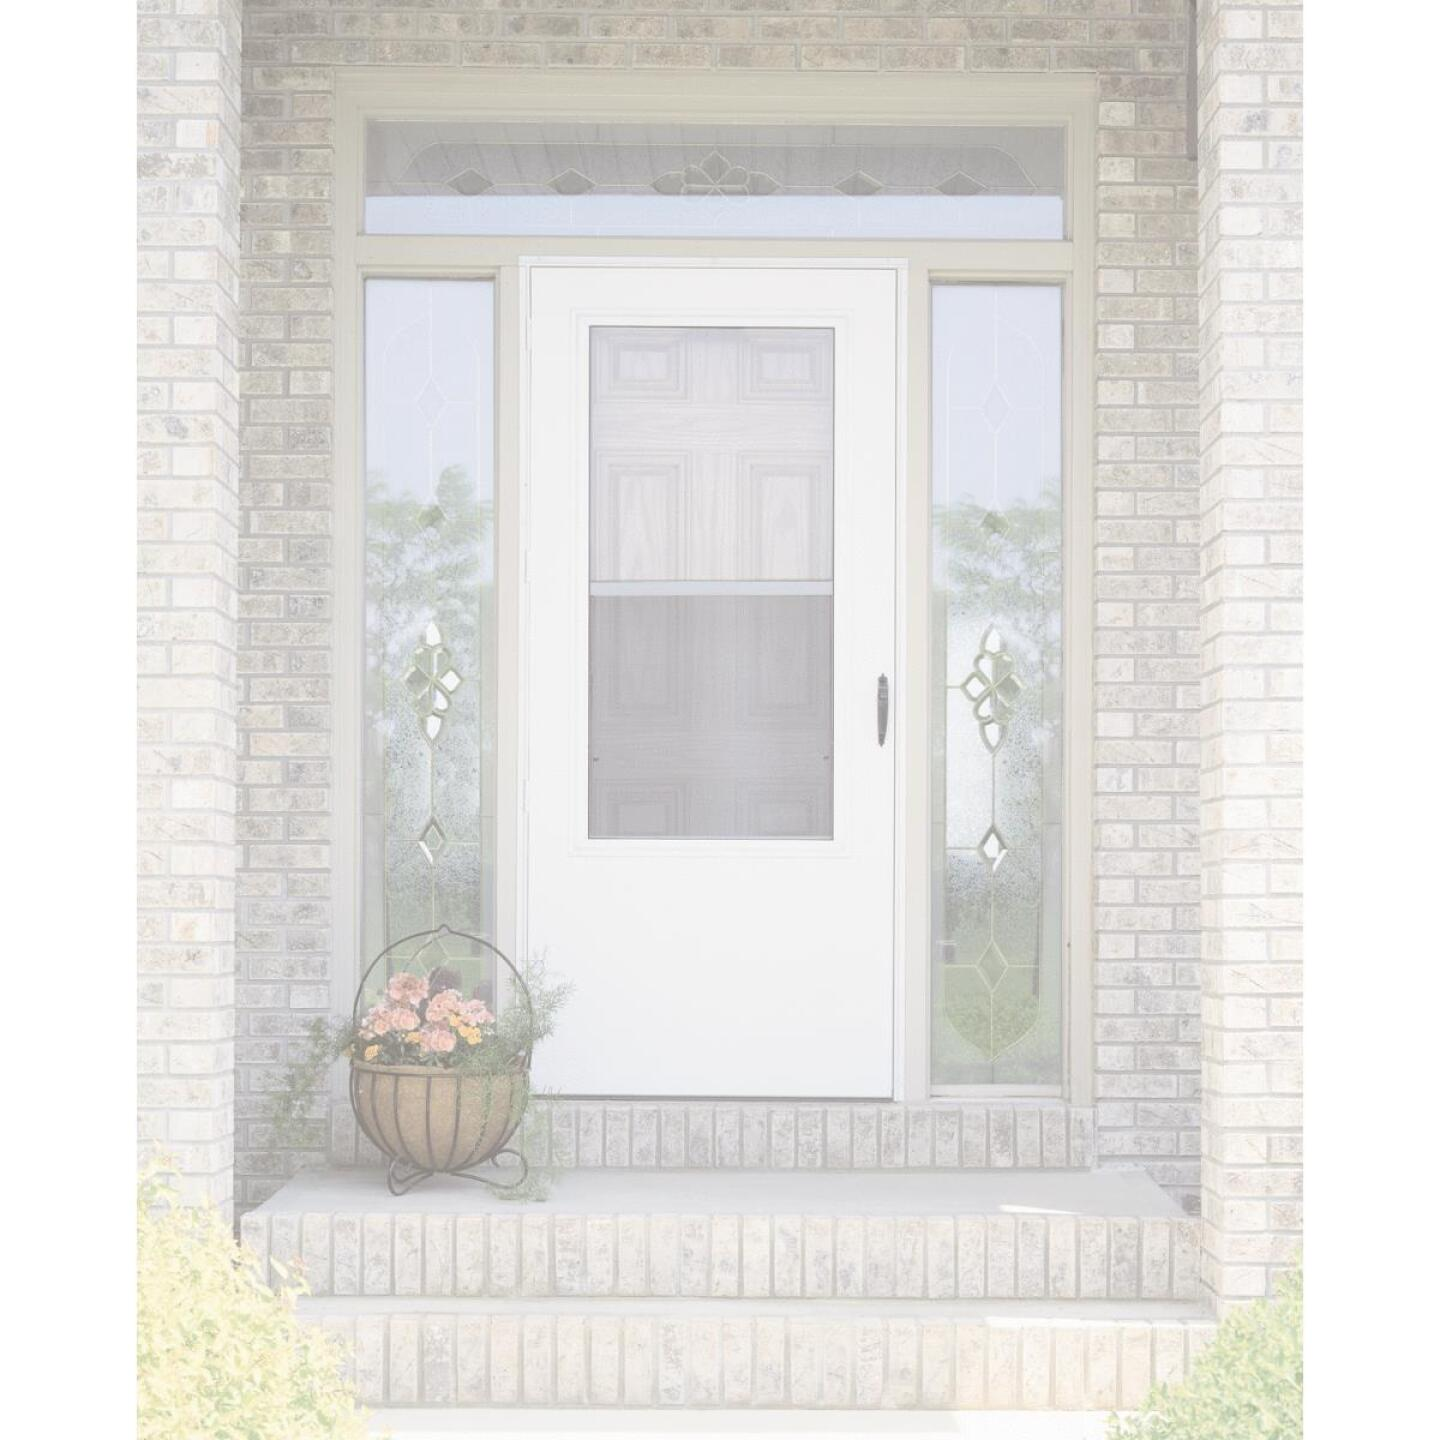 Larson Lifestyle MULTI-VENT 32 In. W x 80 In. H x 1 In. Thick White Mid View DuraTech Storm Door Image 2